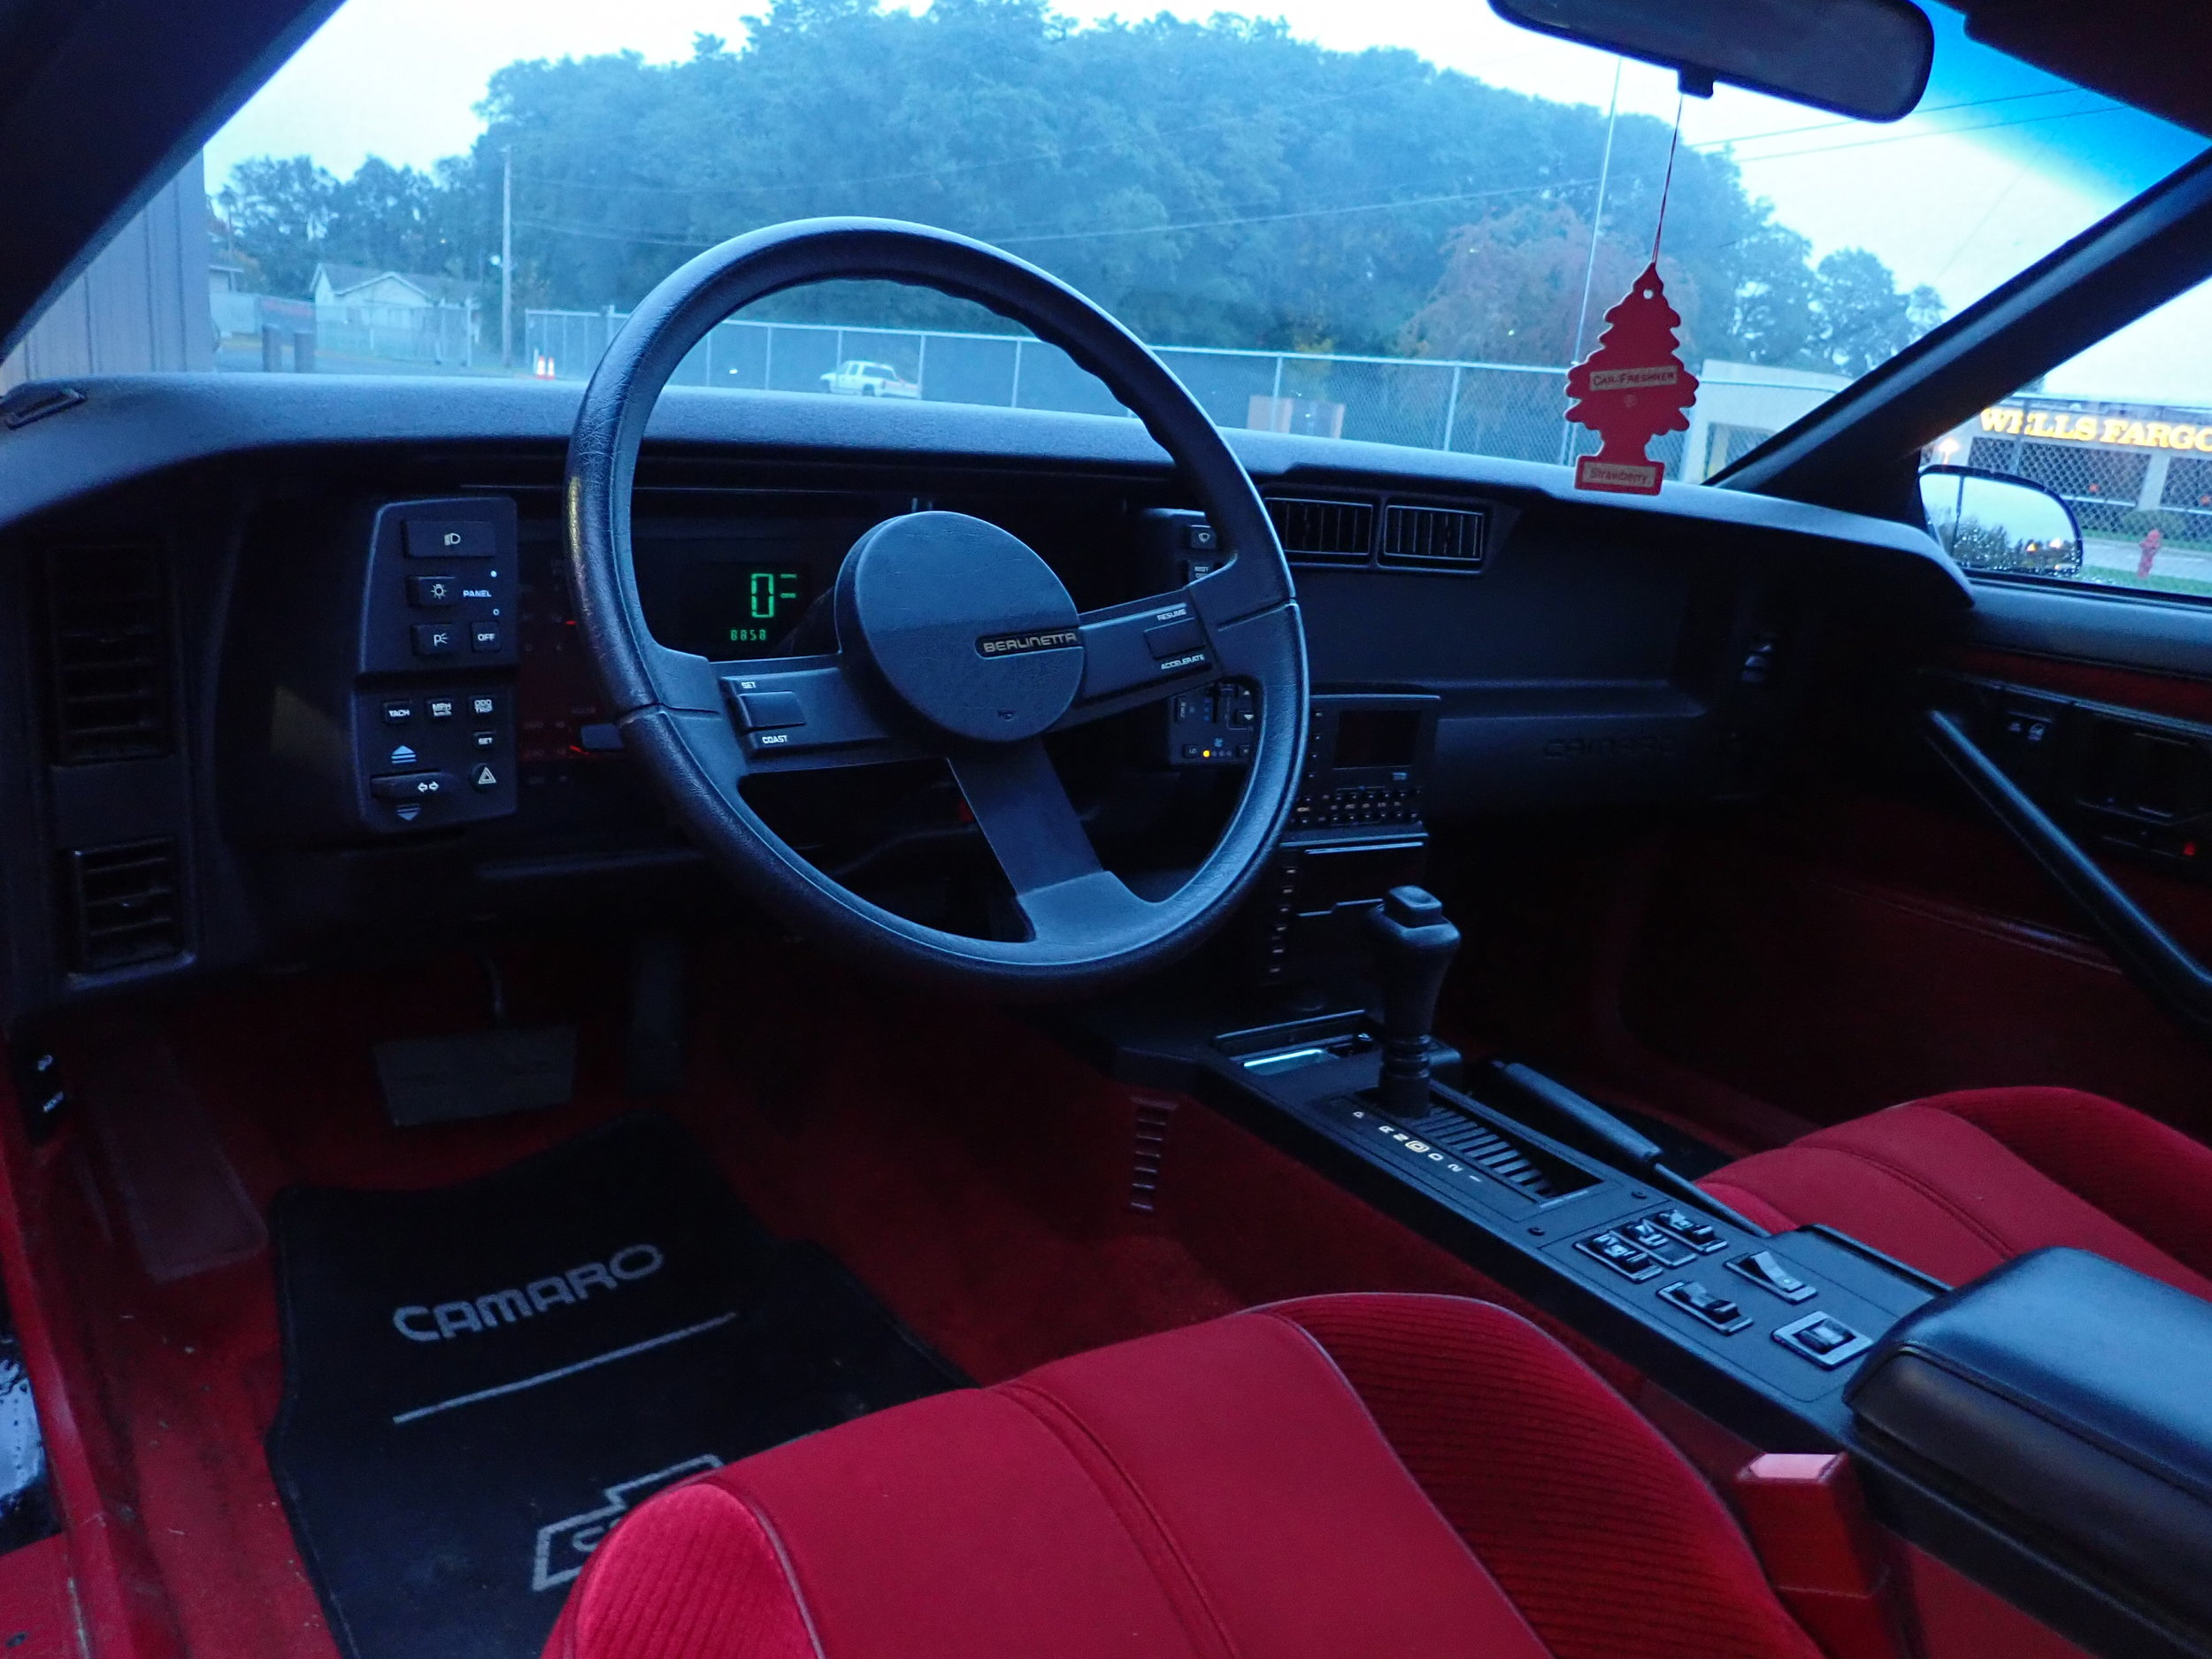 9 1986 Chevrolet Camaro Berlinetta Wherz F28.JPG